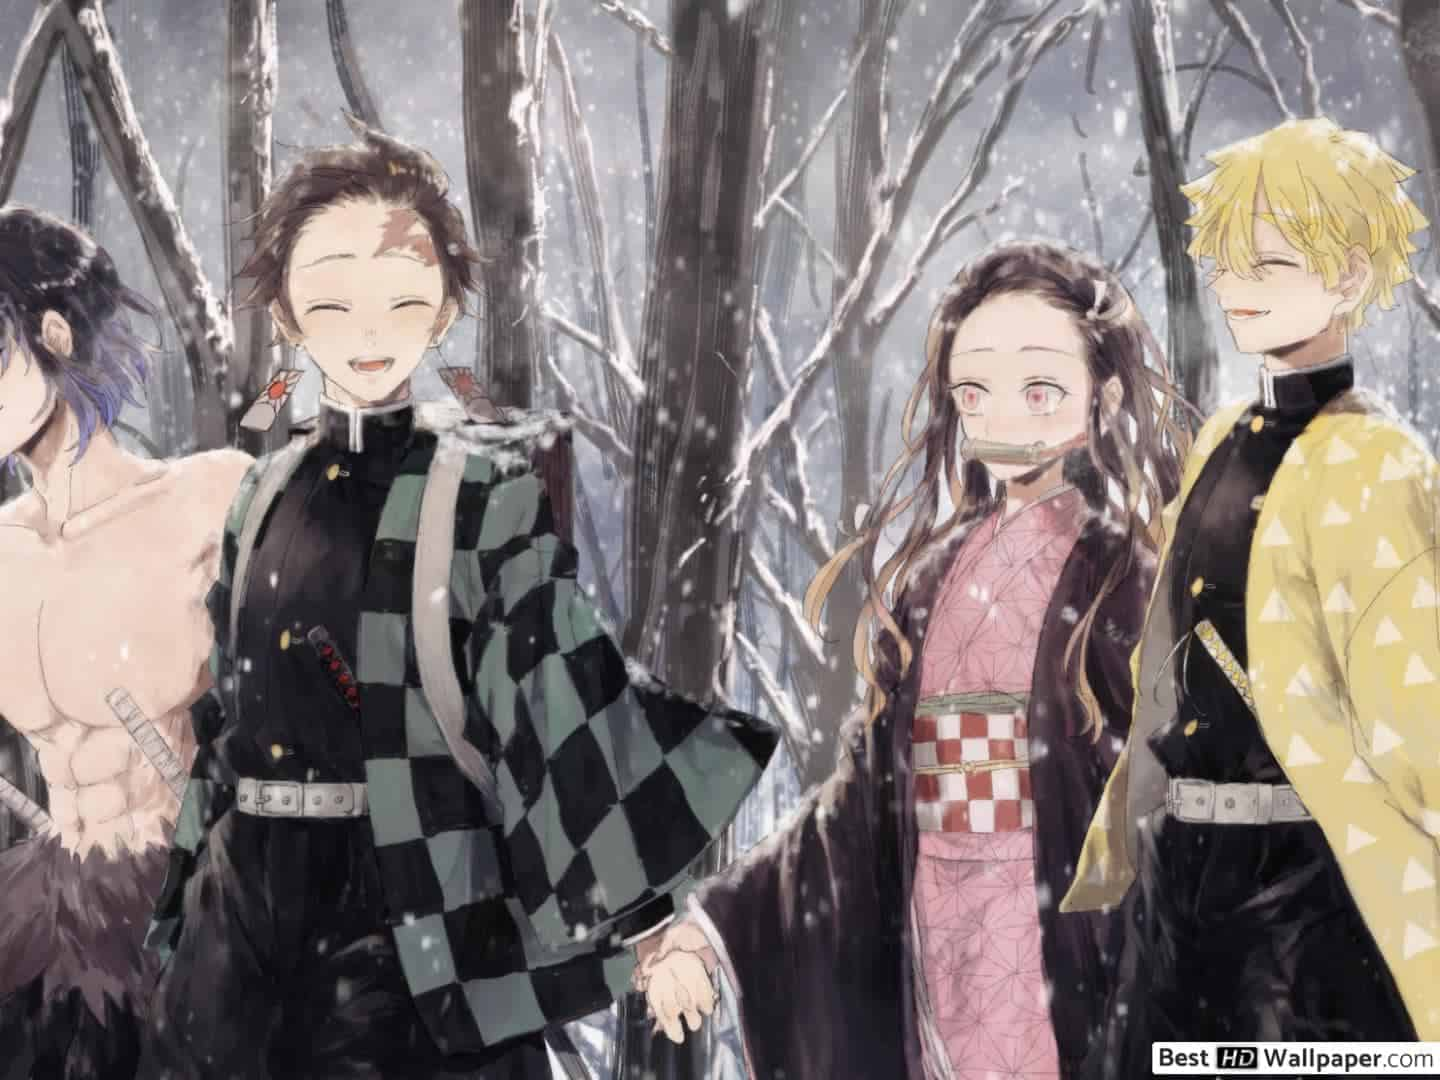 Kimetsu no Yaiba: Demon slayer chapter 198